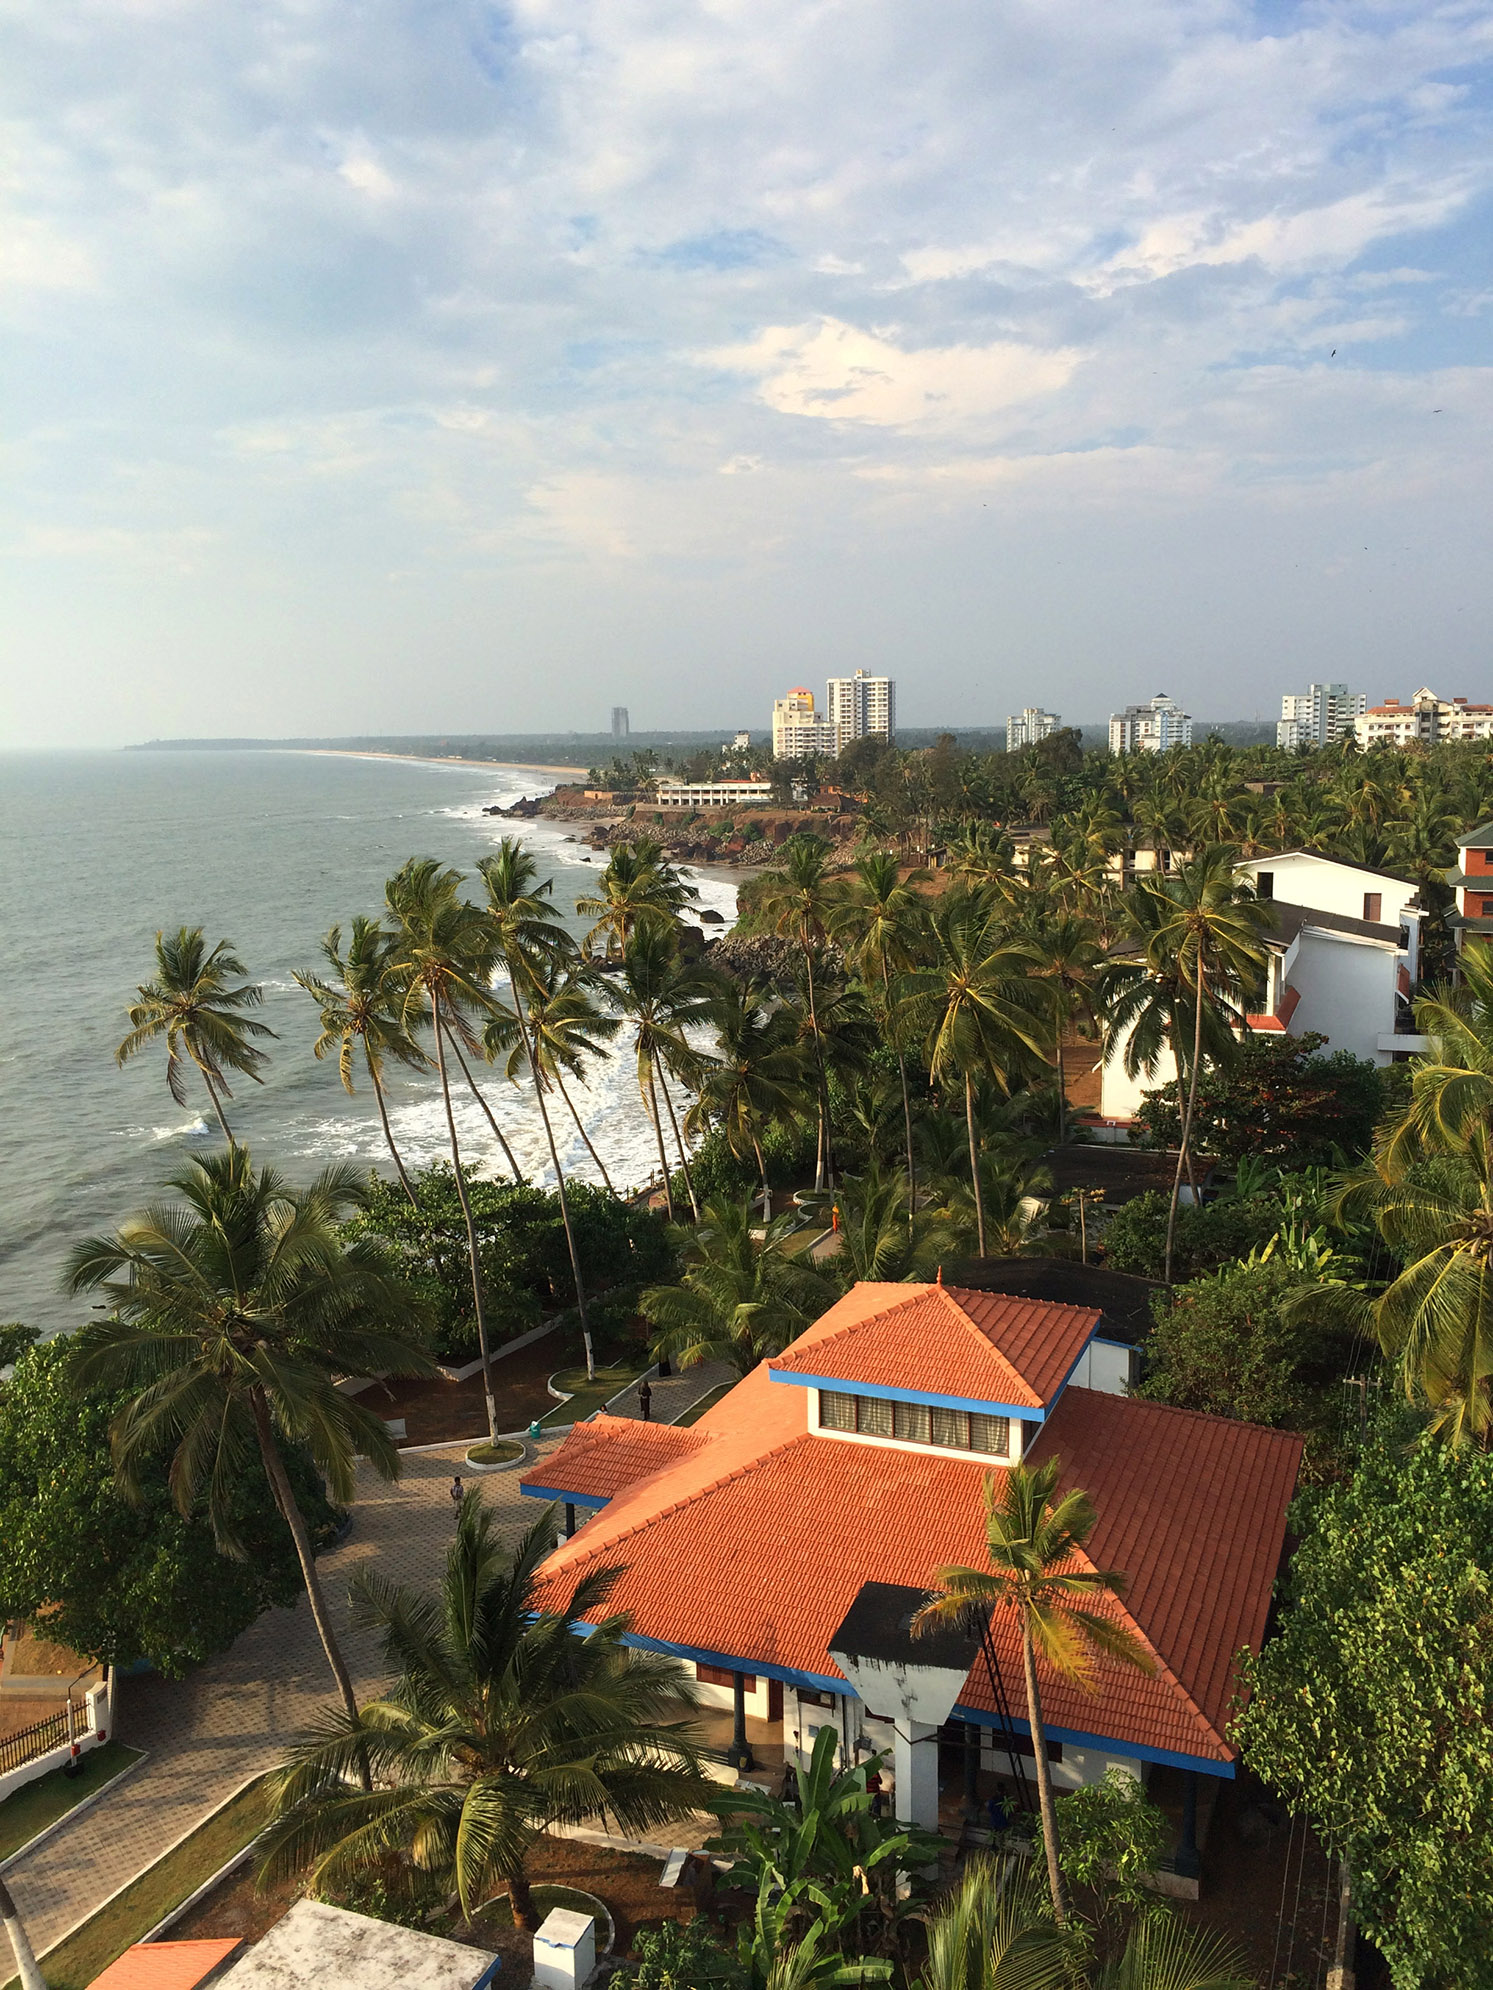 This was the view from the top of the Light House in Kannur, Kerela.